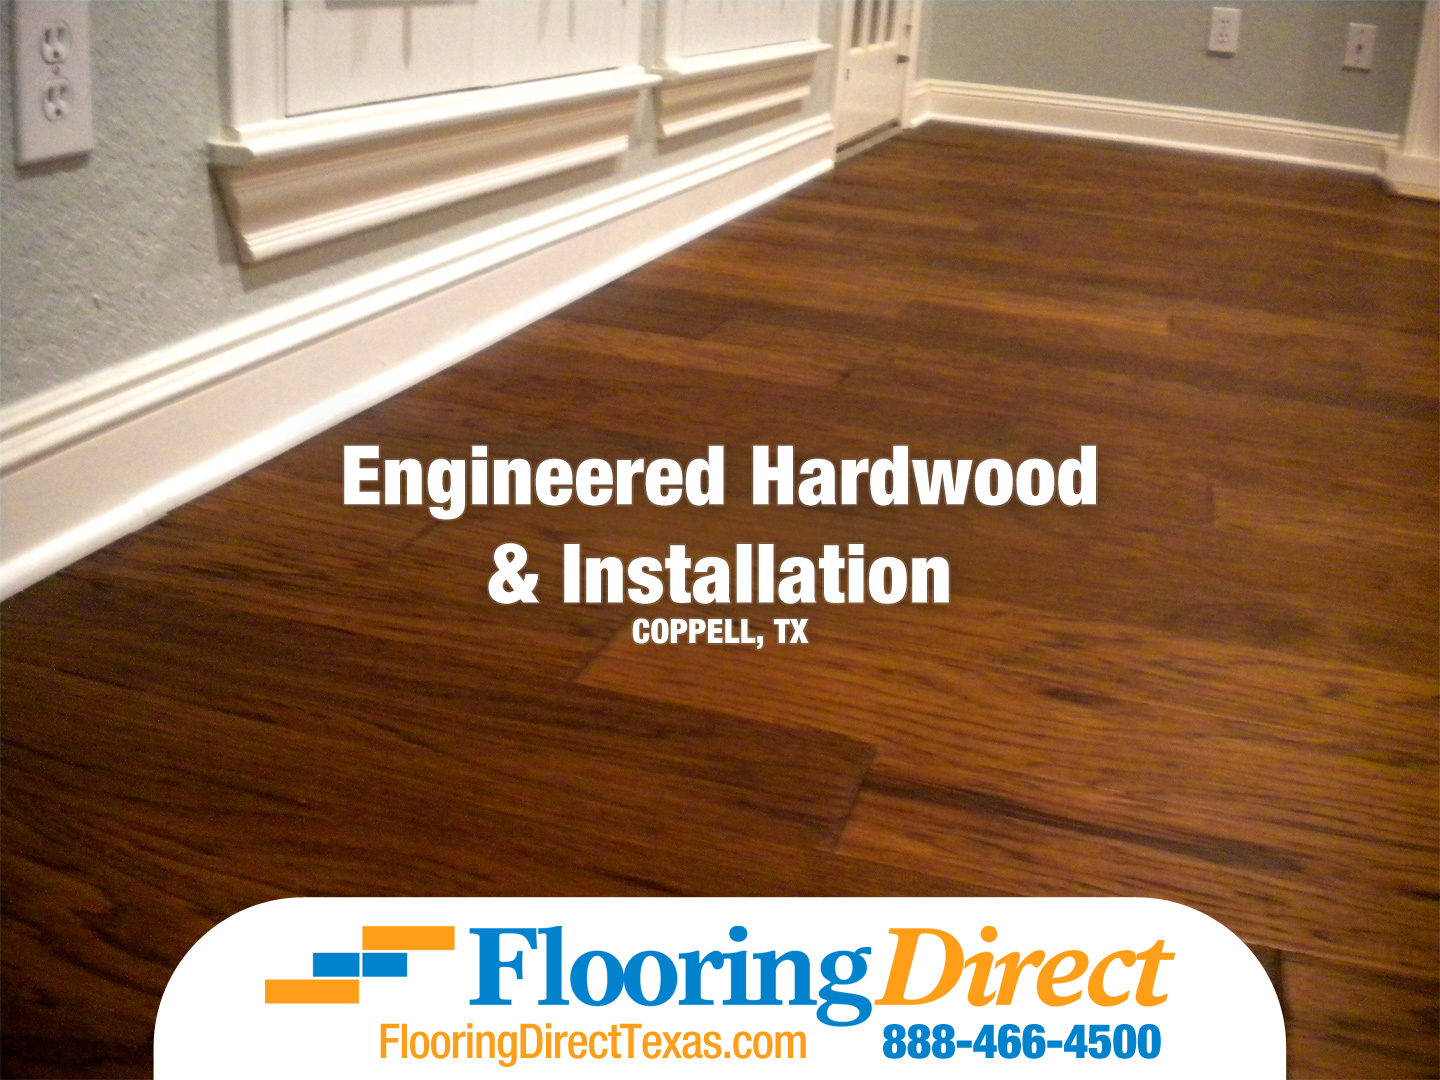 Engineered Hardwood And Installation Coppell TX Flooring Direct 888-466-4500 WS4